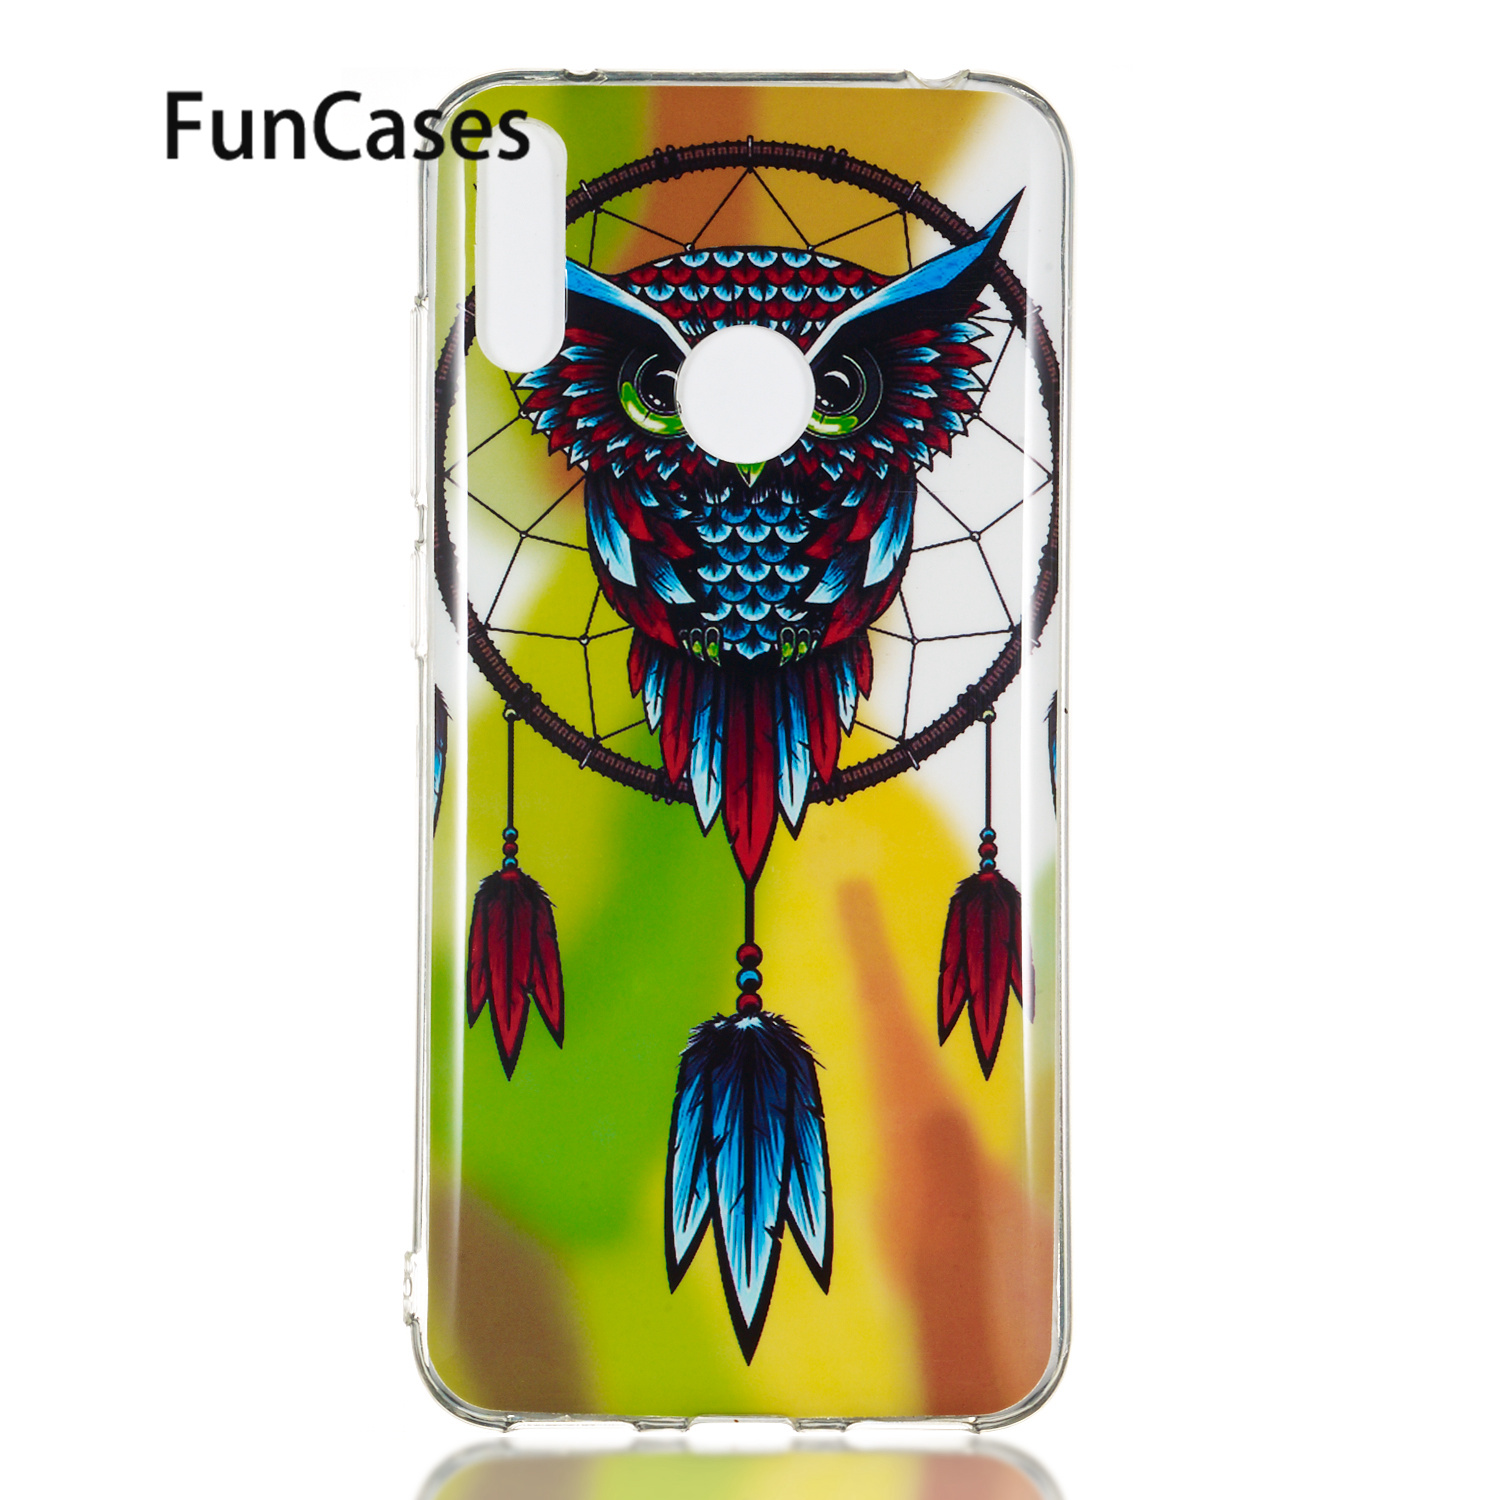 <font><b>Cases</b></font> For <font><b>Huawei</b></font> Y6 Pro <font><b>2019</b></font> Soft Silicone Shell For <font><b>Huawei</b></font> etui Enjoy 7S 9 Honor 10 Lite Mate Pro 20 Nova 3i P20 P30 P9 Mini <font><b>Y7</b></font> image